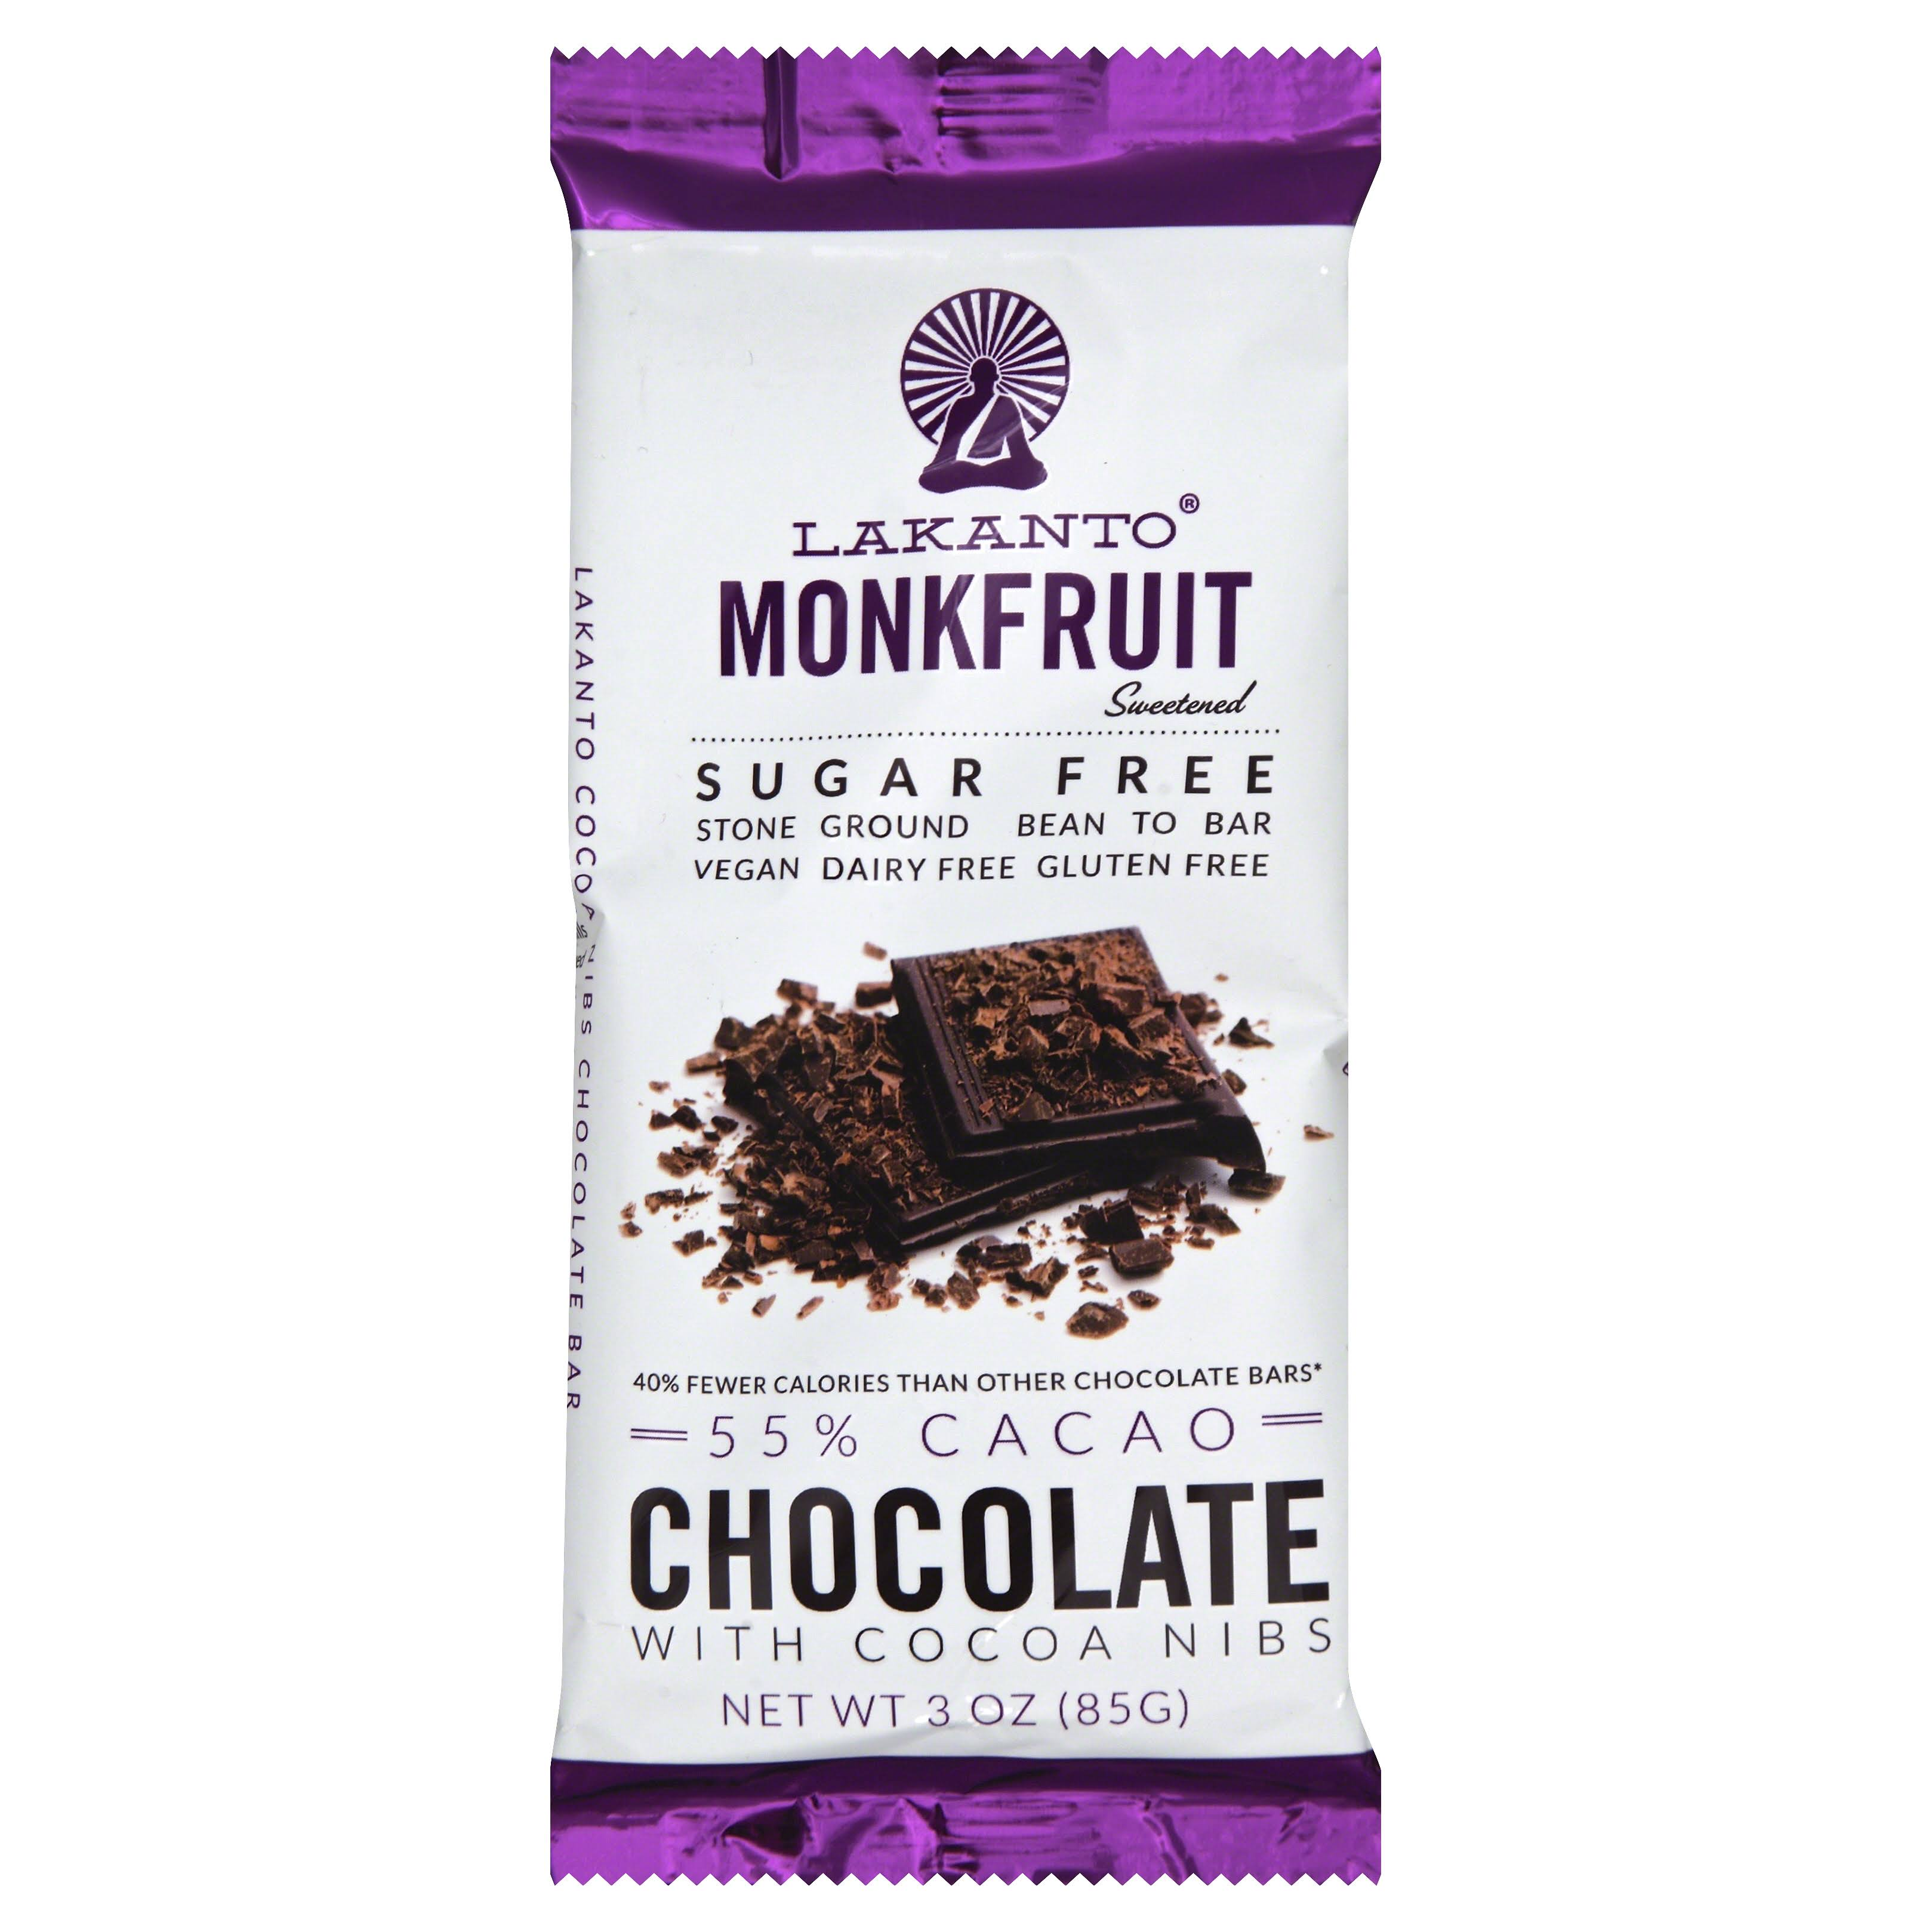 Lakanto Monkfruit Chocolate Bar - Cocoa Nibs, 85g